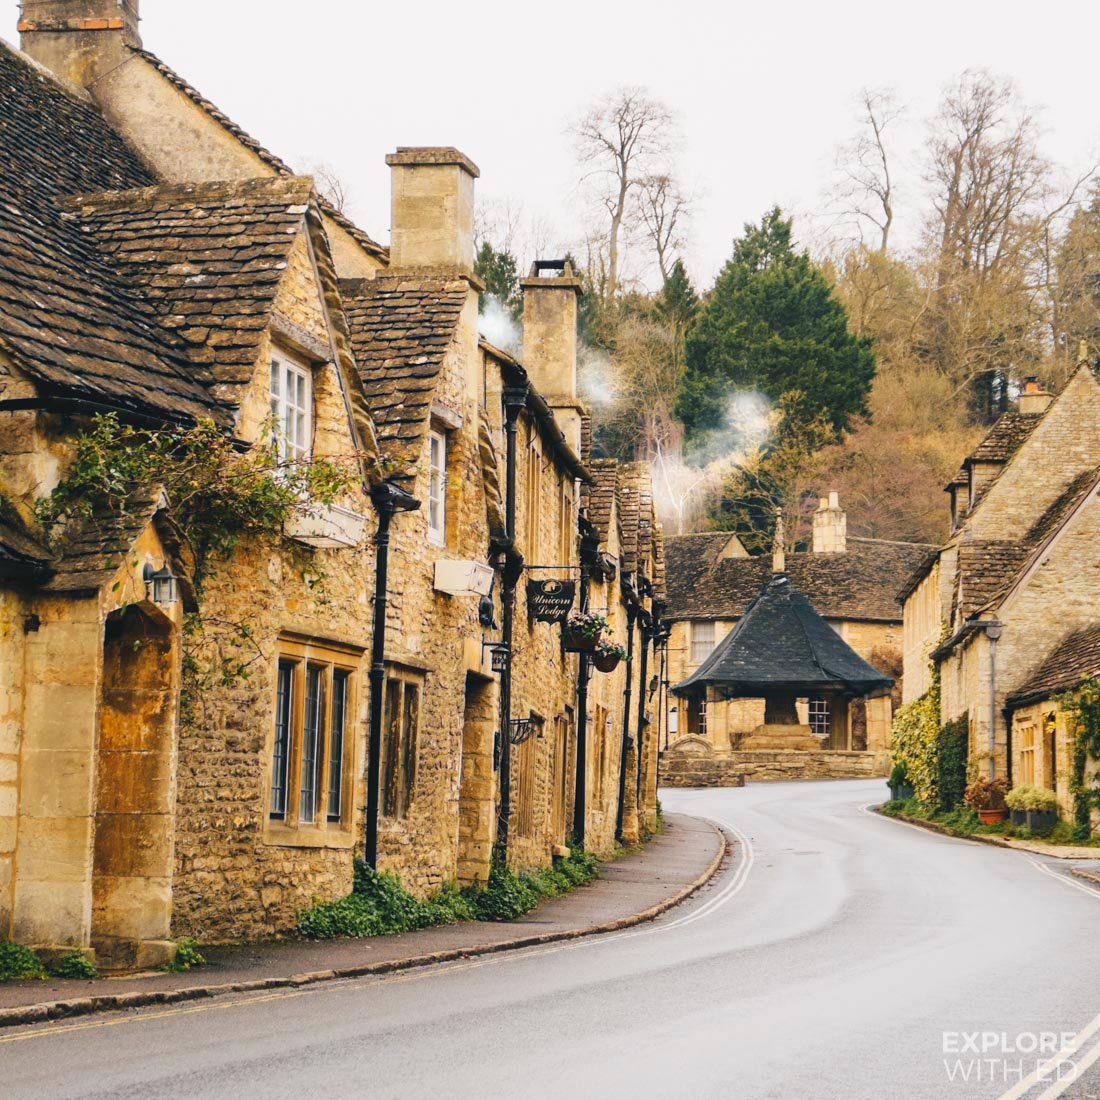 Unicorn Lodge and row of houses in Castle Combe